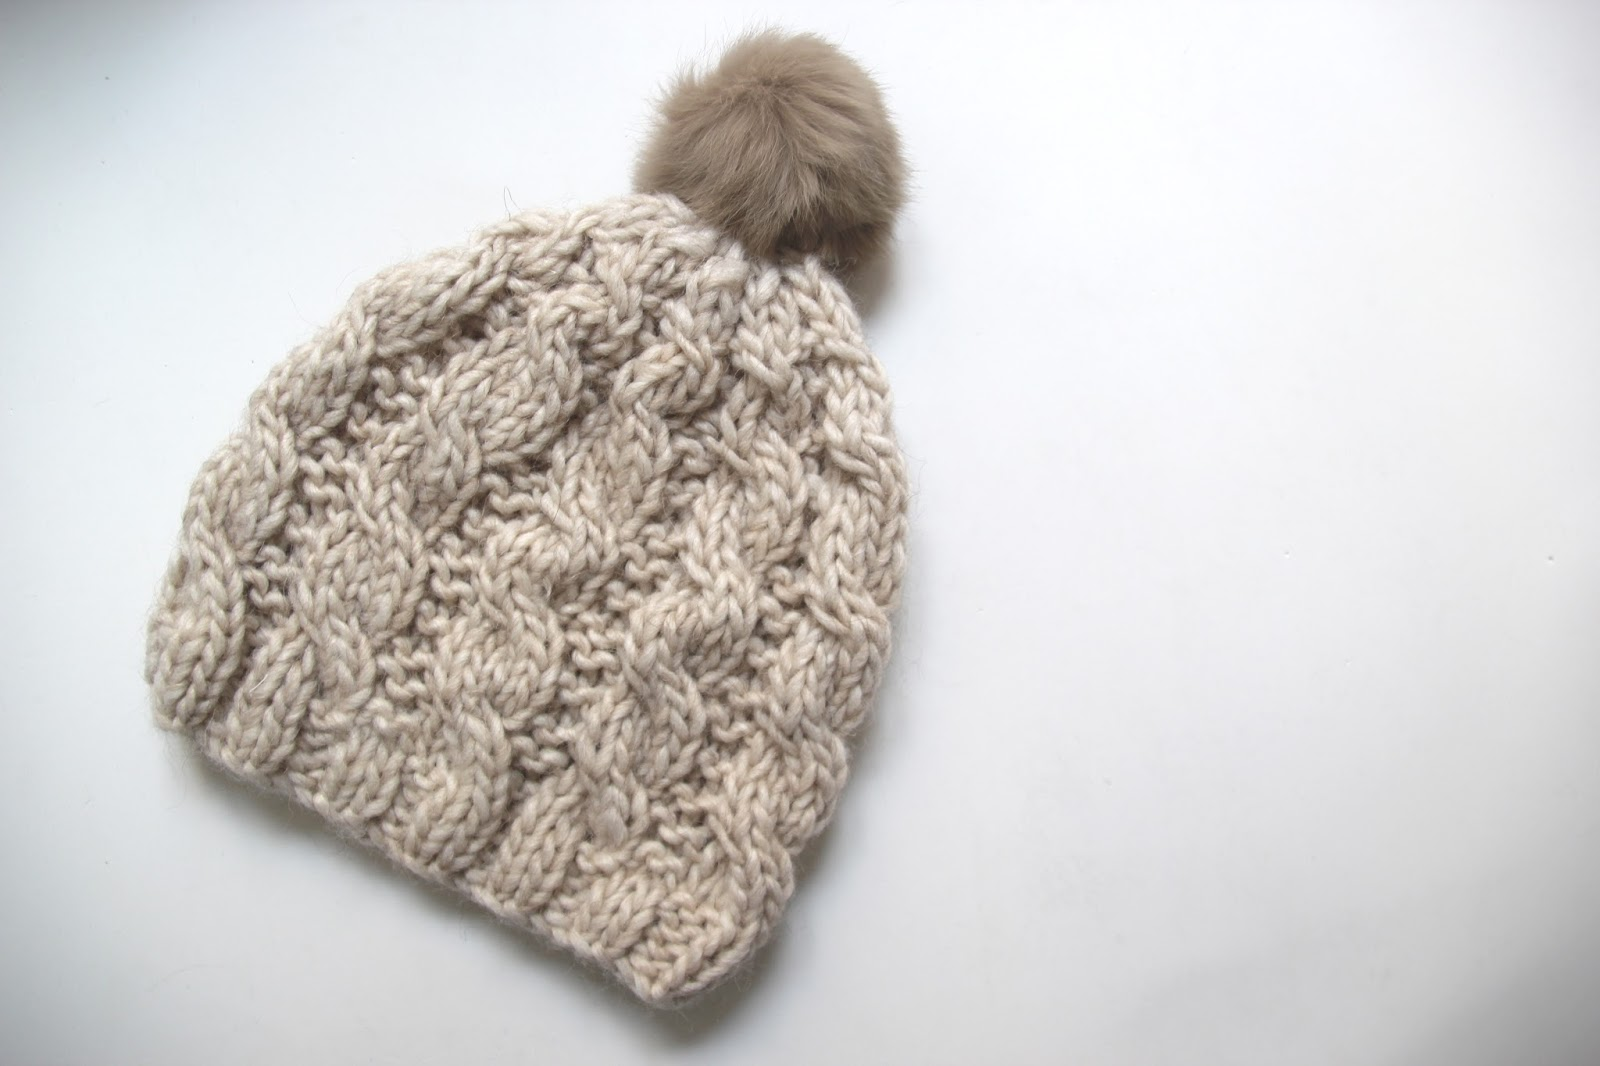 Contemporáneo Patrón Simple Gorro De Lana Ornamento - Manta de Tejer ...